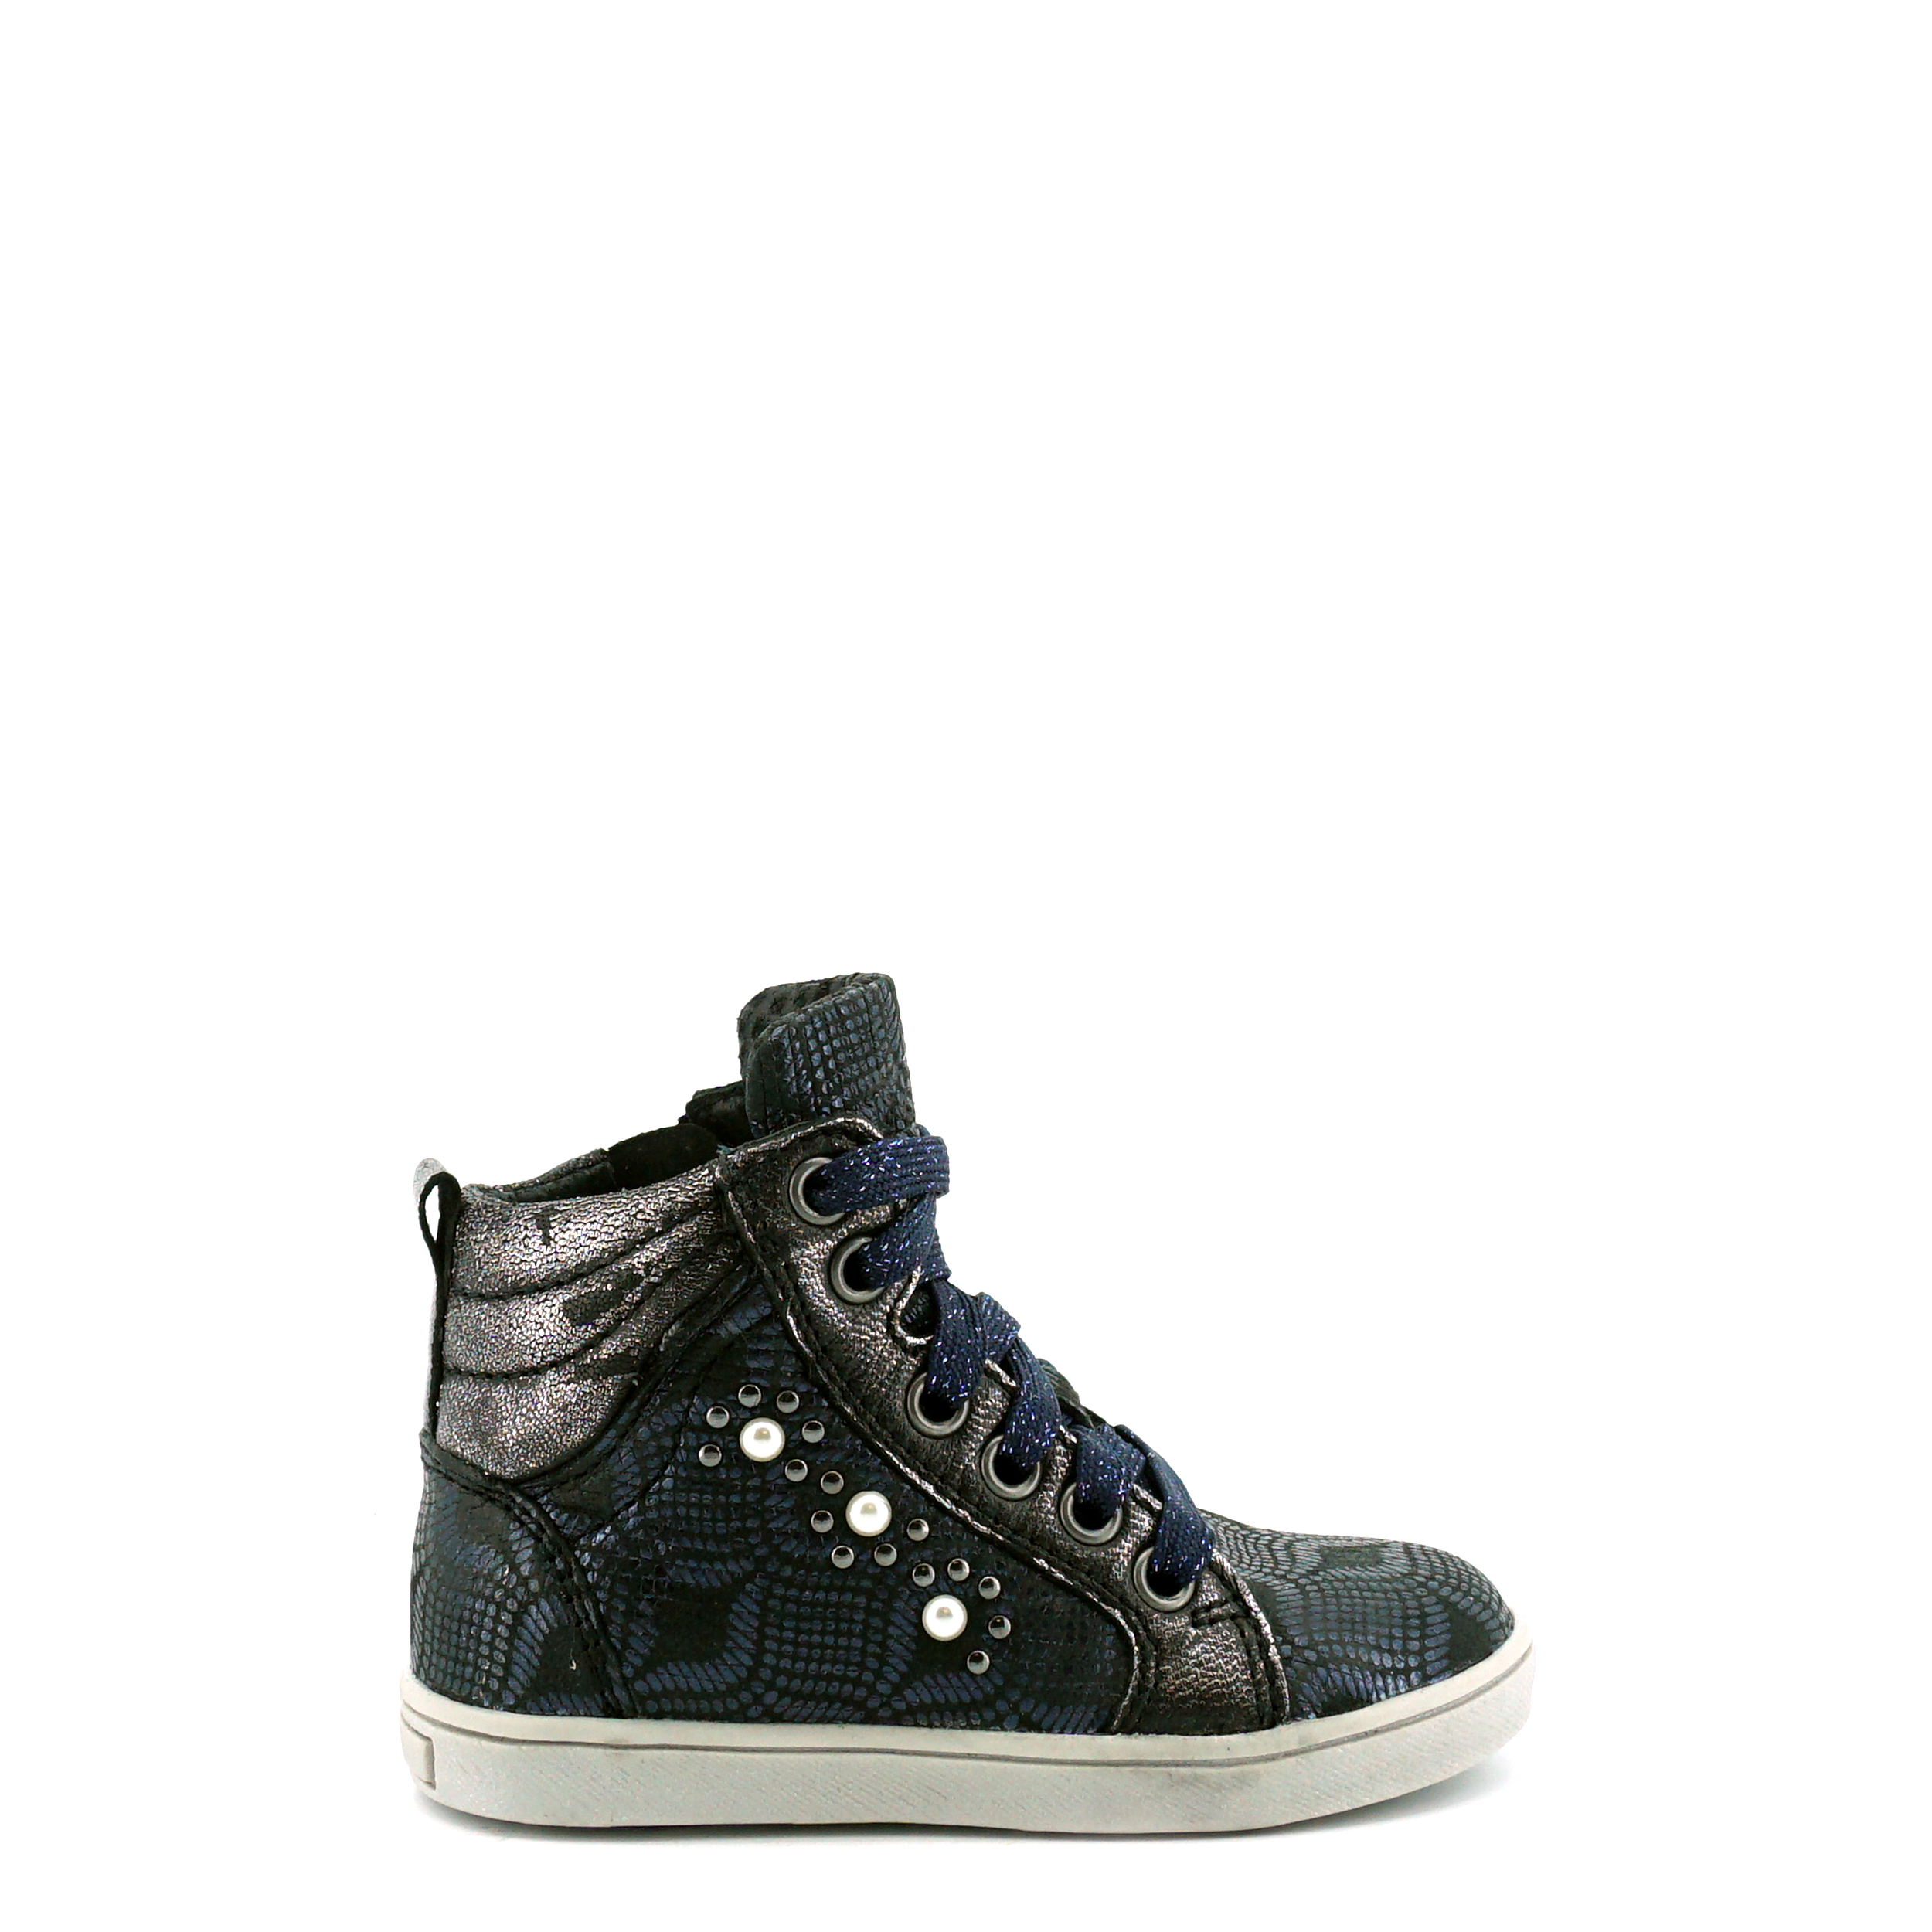 Meisjes Veterboot Twins 319601 navy 3.5